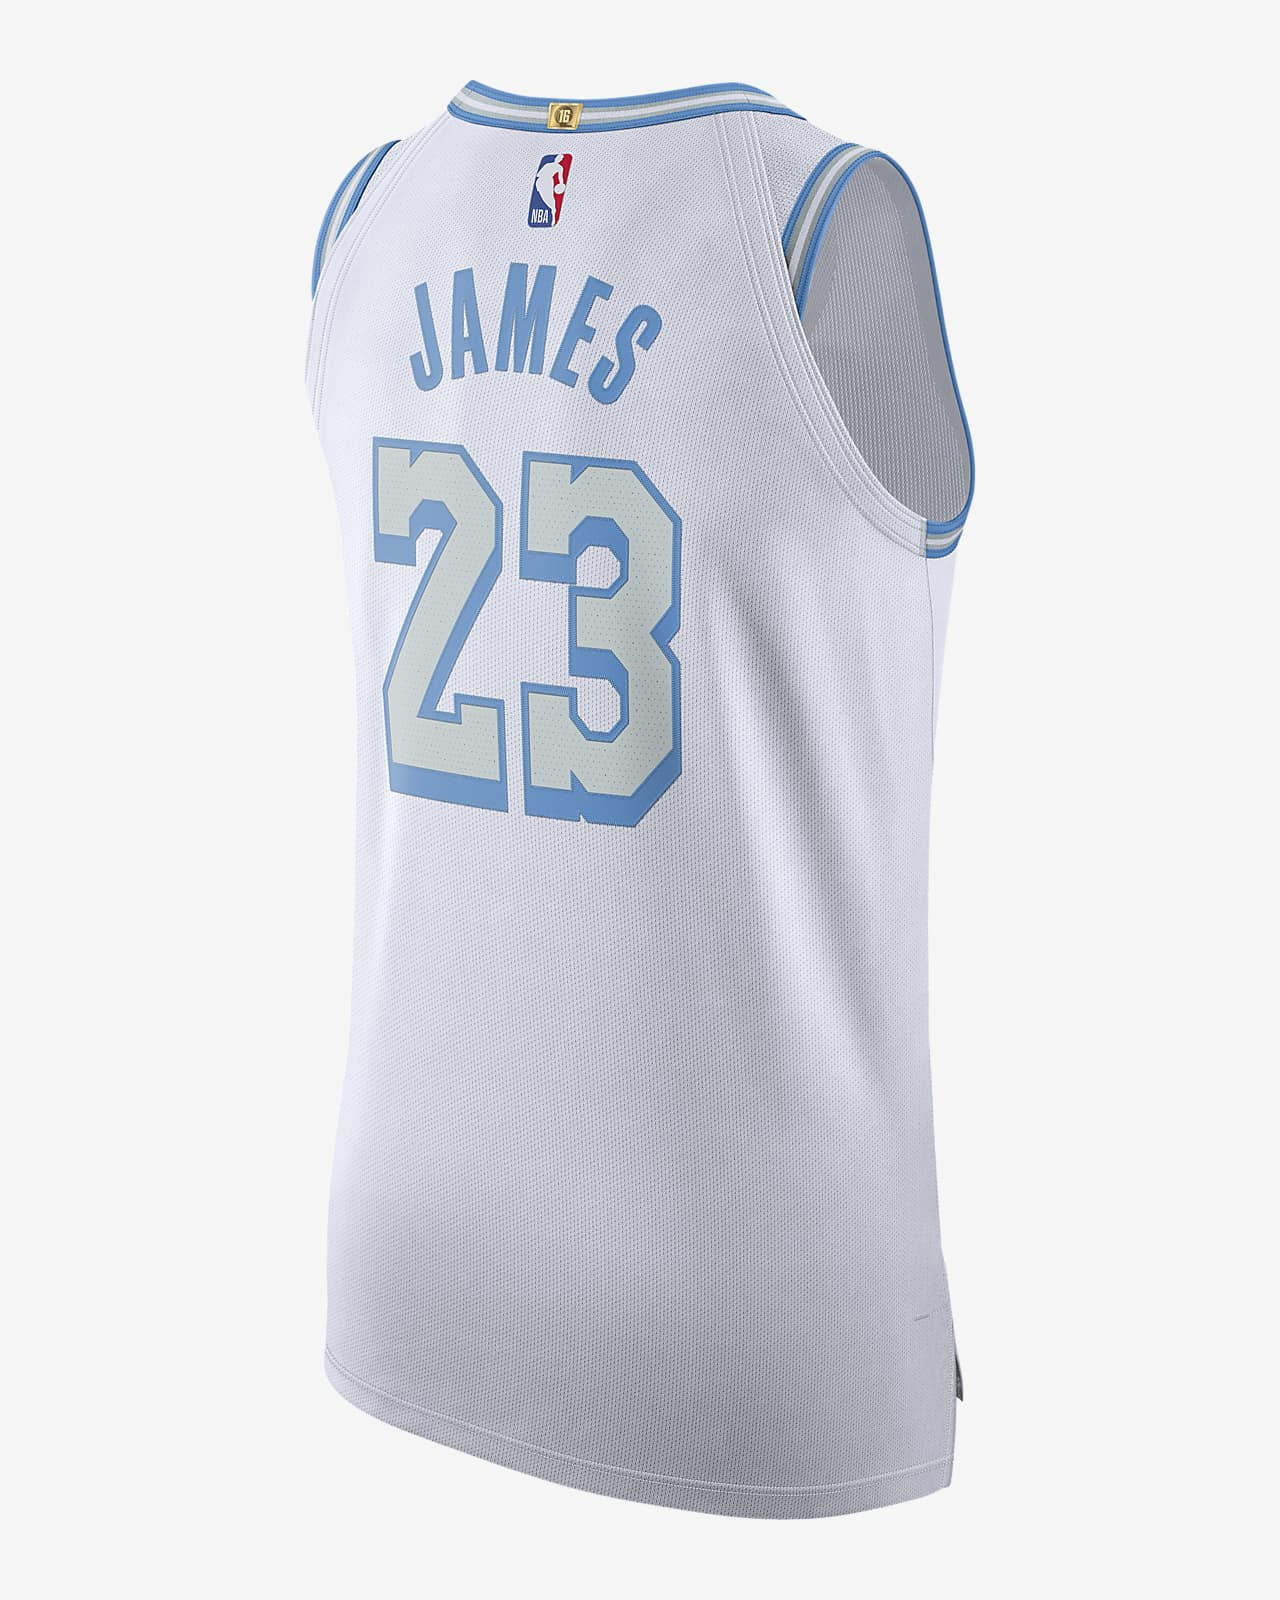 Los Angeles Lakers City Edition Nike NBA Authentic Jersey